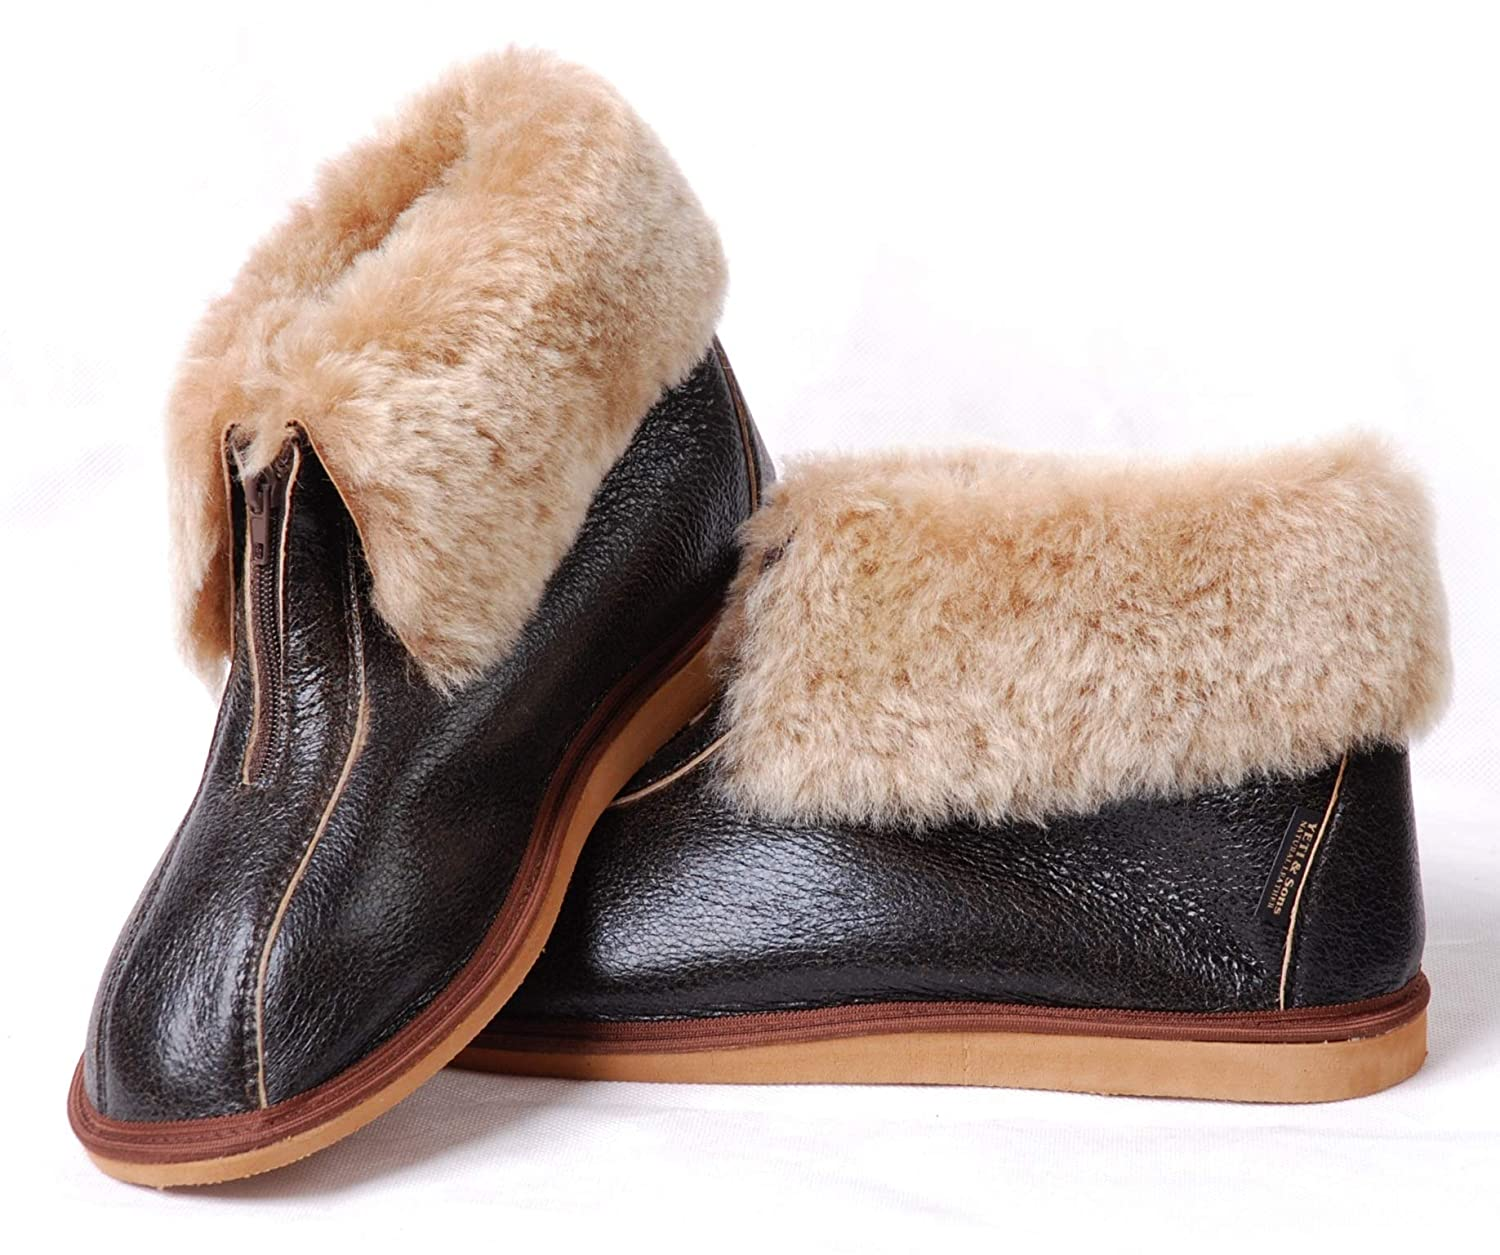 57bbf8ca437 Yeti & Sons Hand Crafted Luxury Men's 100% Sheepskin Lined Zip Boot  Slippers Gift Boxed